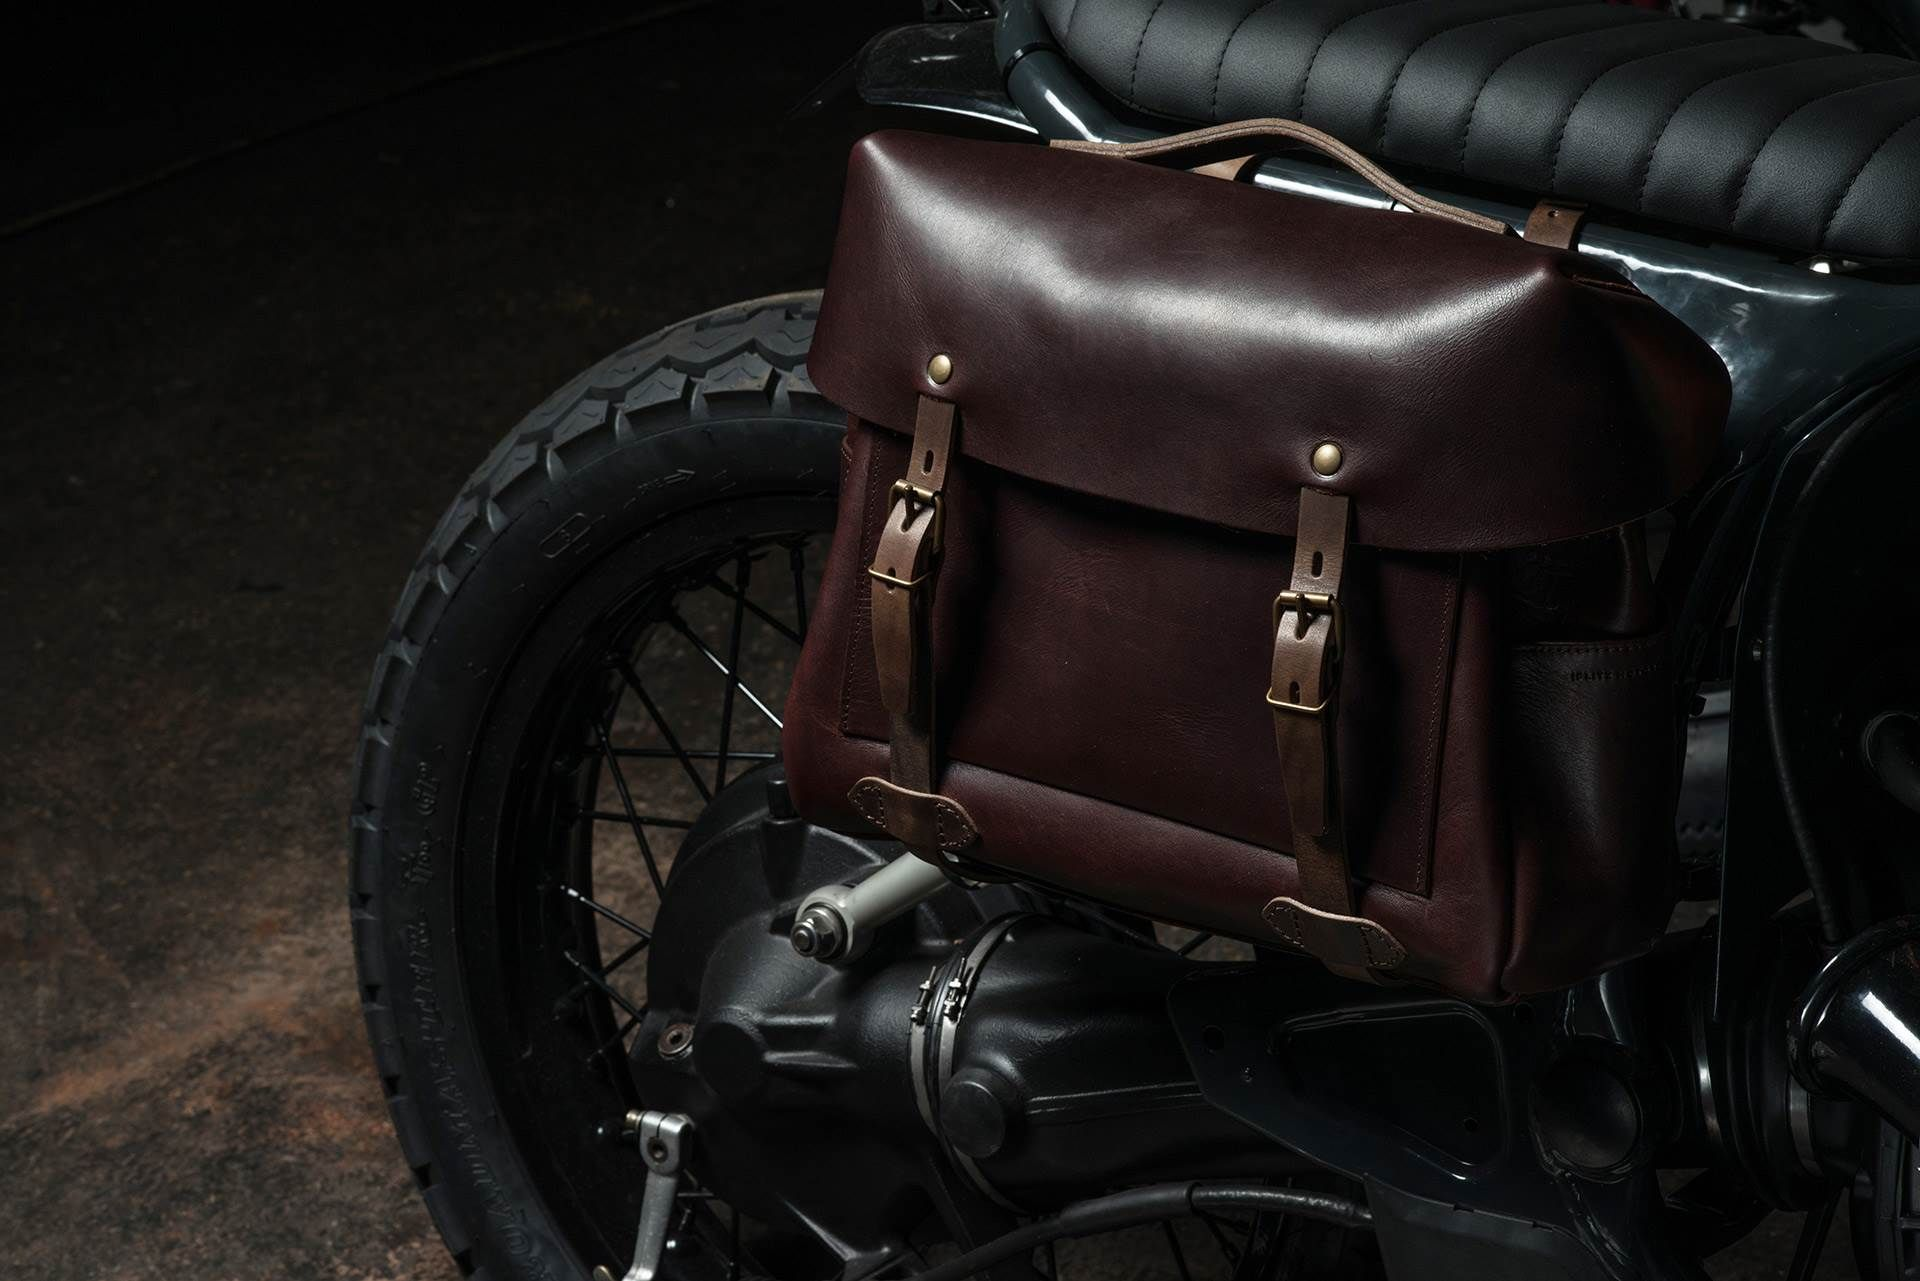 Bleu De Chauffe Has Teamed Up With Paris Custom Motorcycle